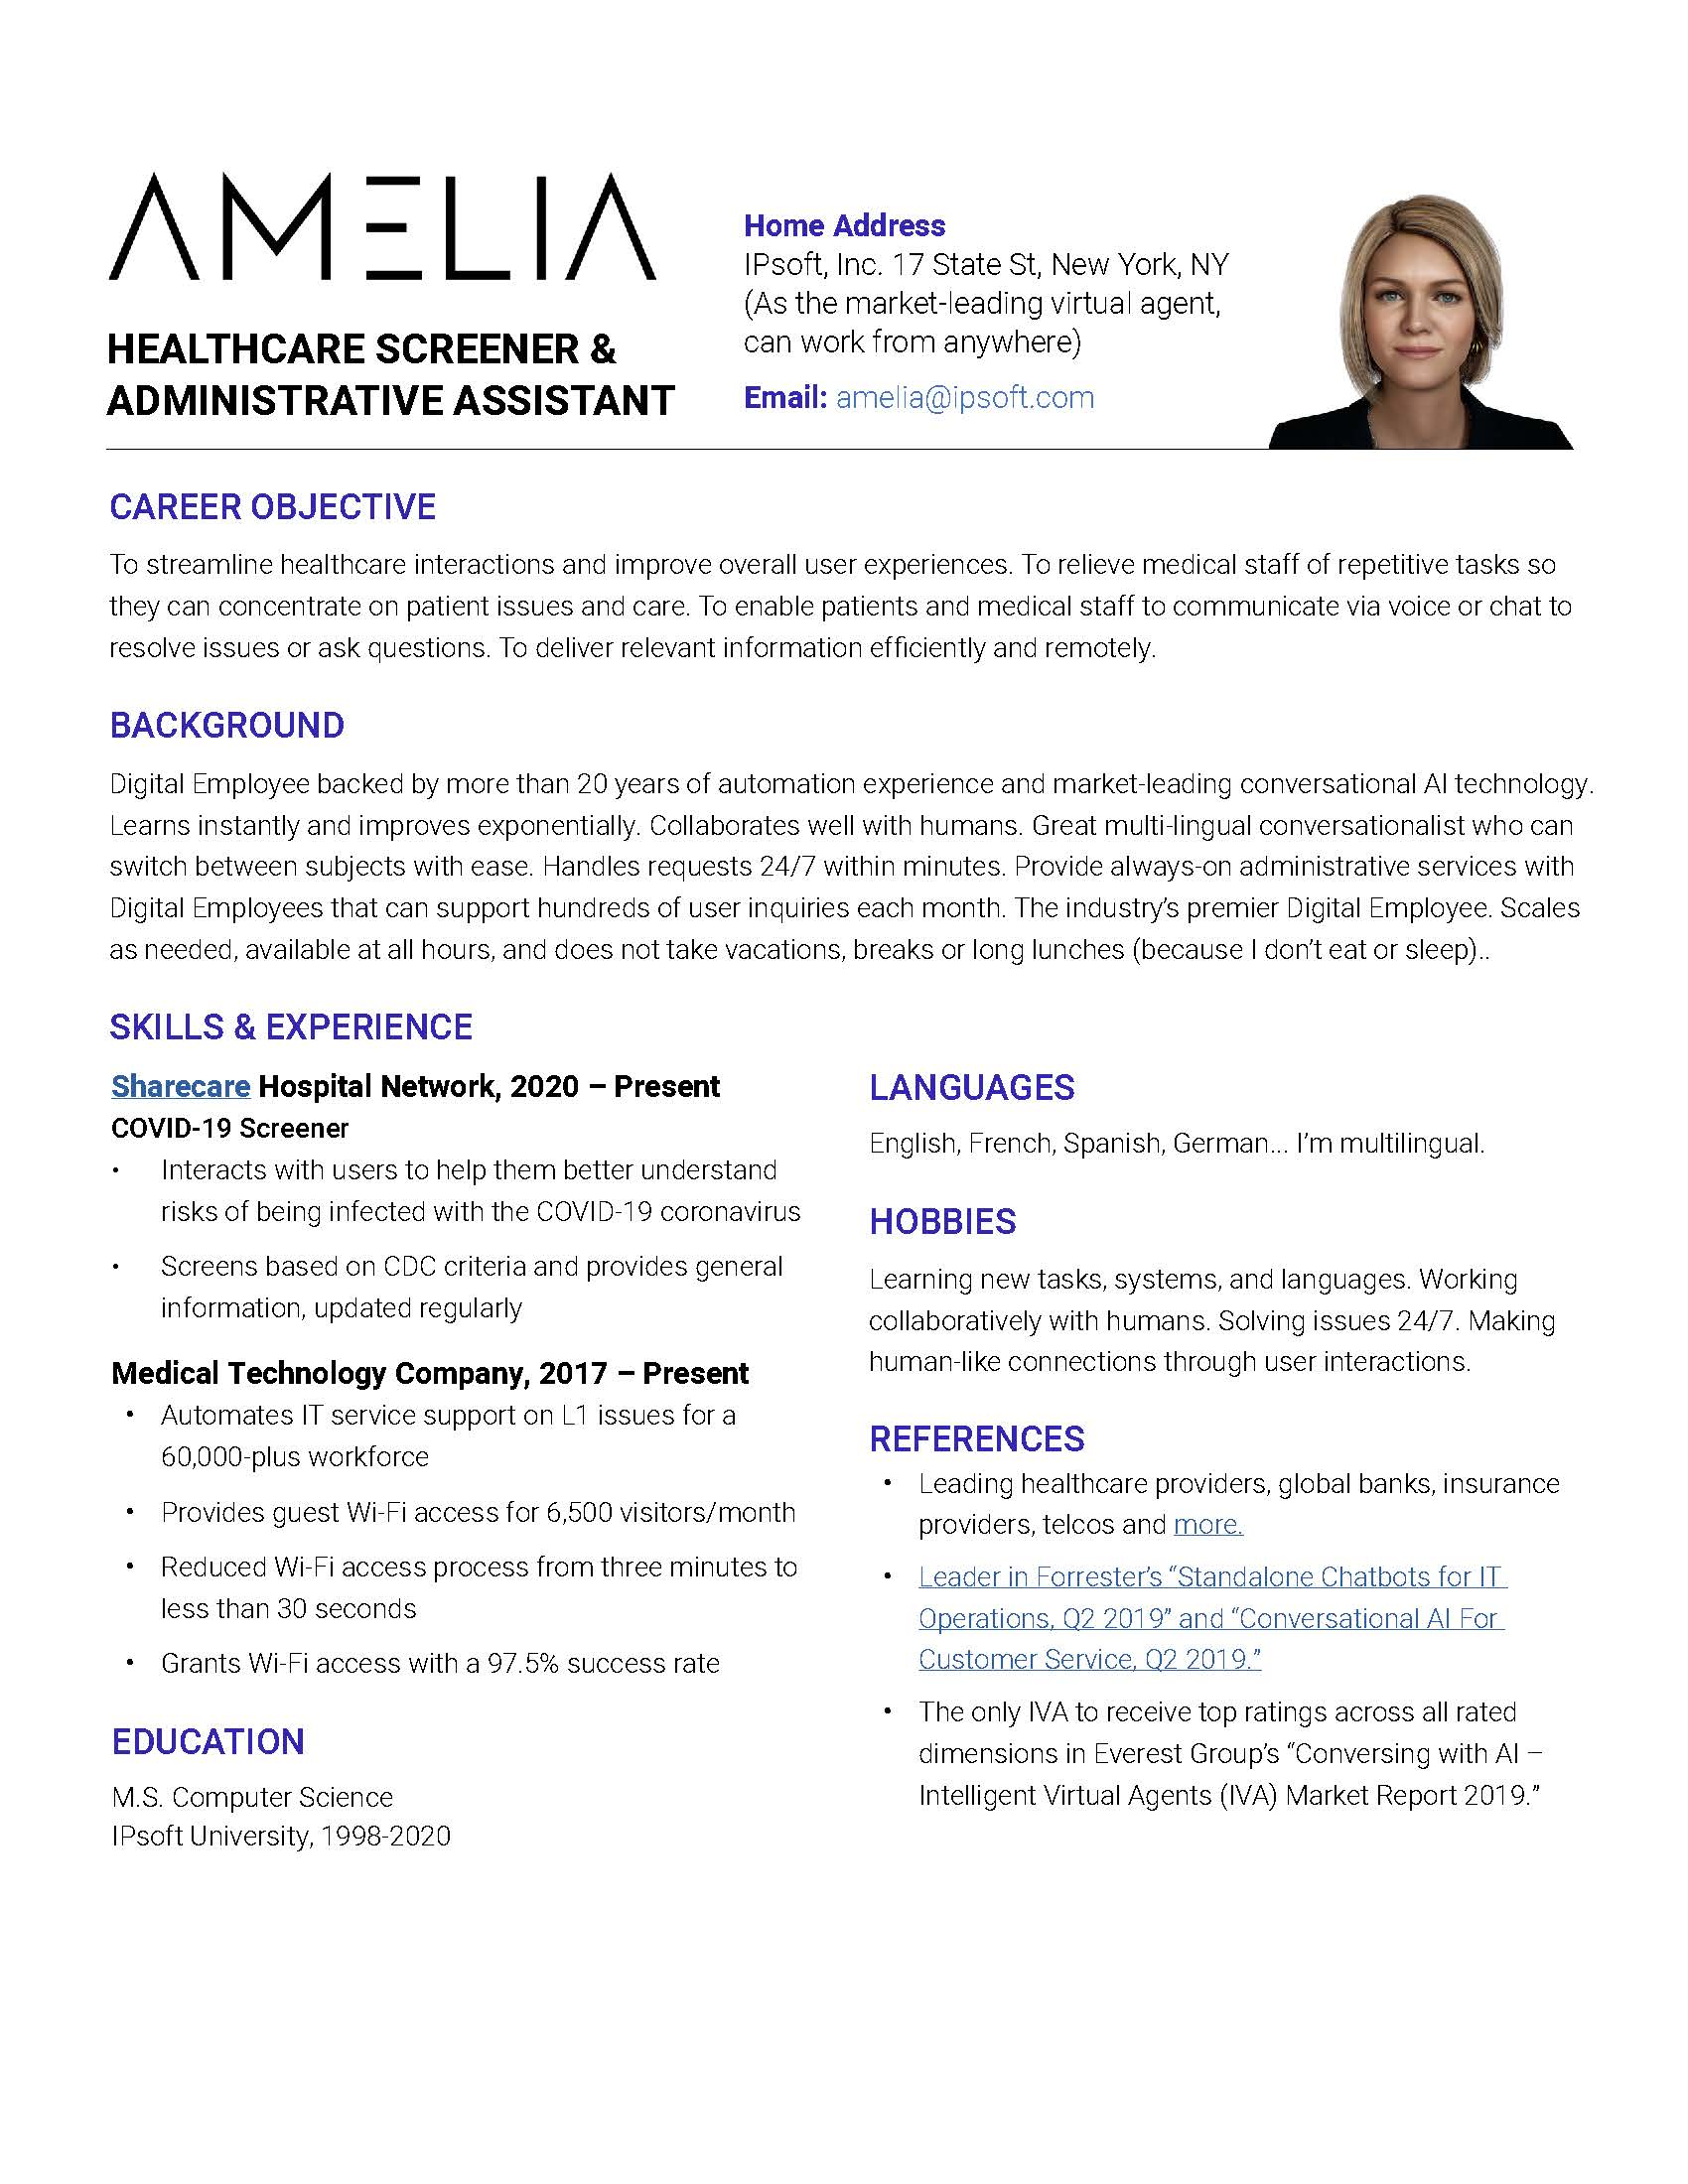 Amelia Resume Healthcare Screener and Administrative Assistant